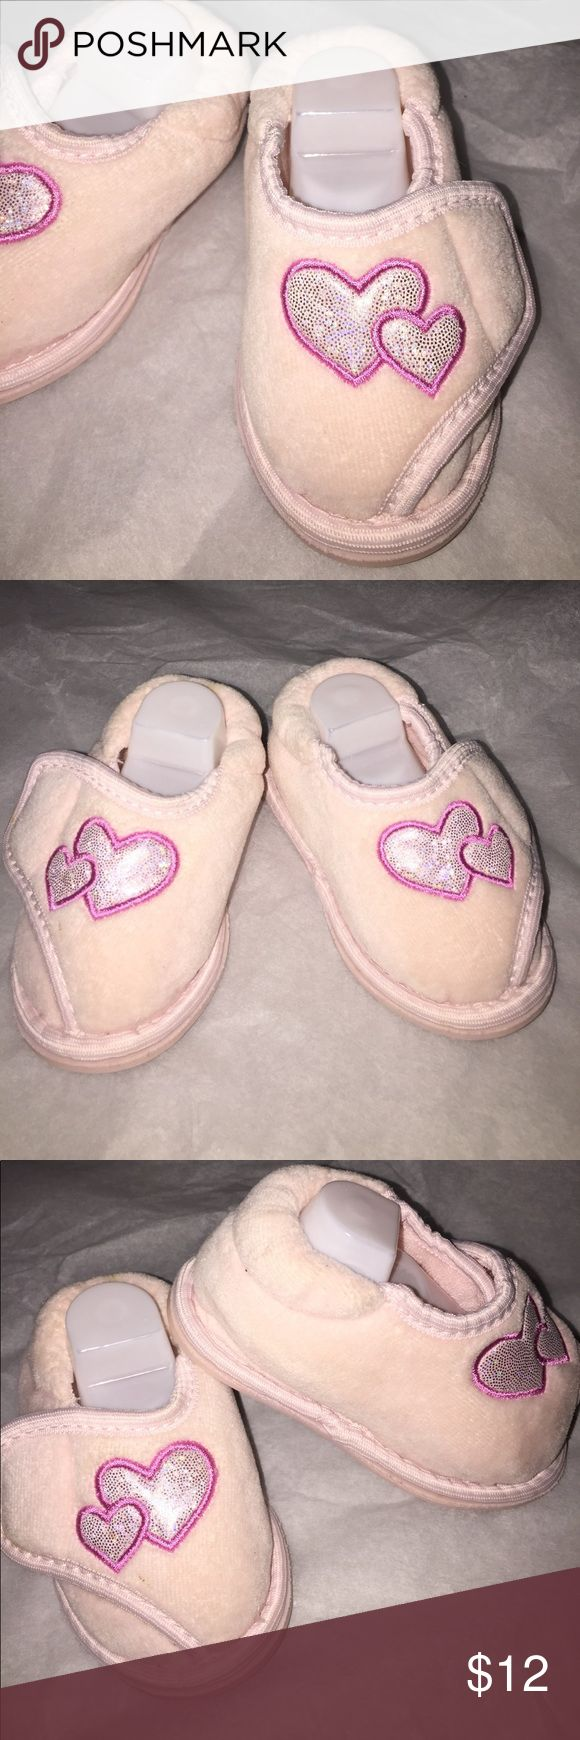 Cute slippers Adjustable Velcro pink Sequin Hearts Cute slippers Adjustable Velcro pink Sequin Heart size 3-4. Really cute! Excellent Condition babies-r-us Shoes Slippers